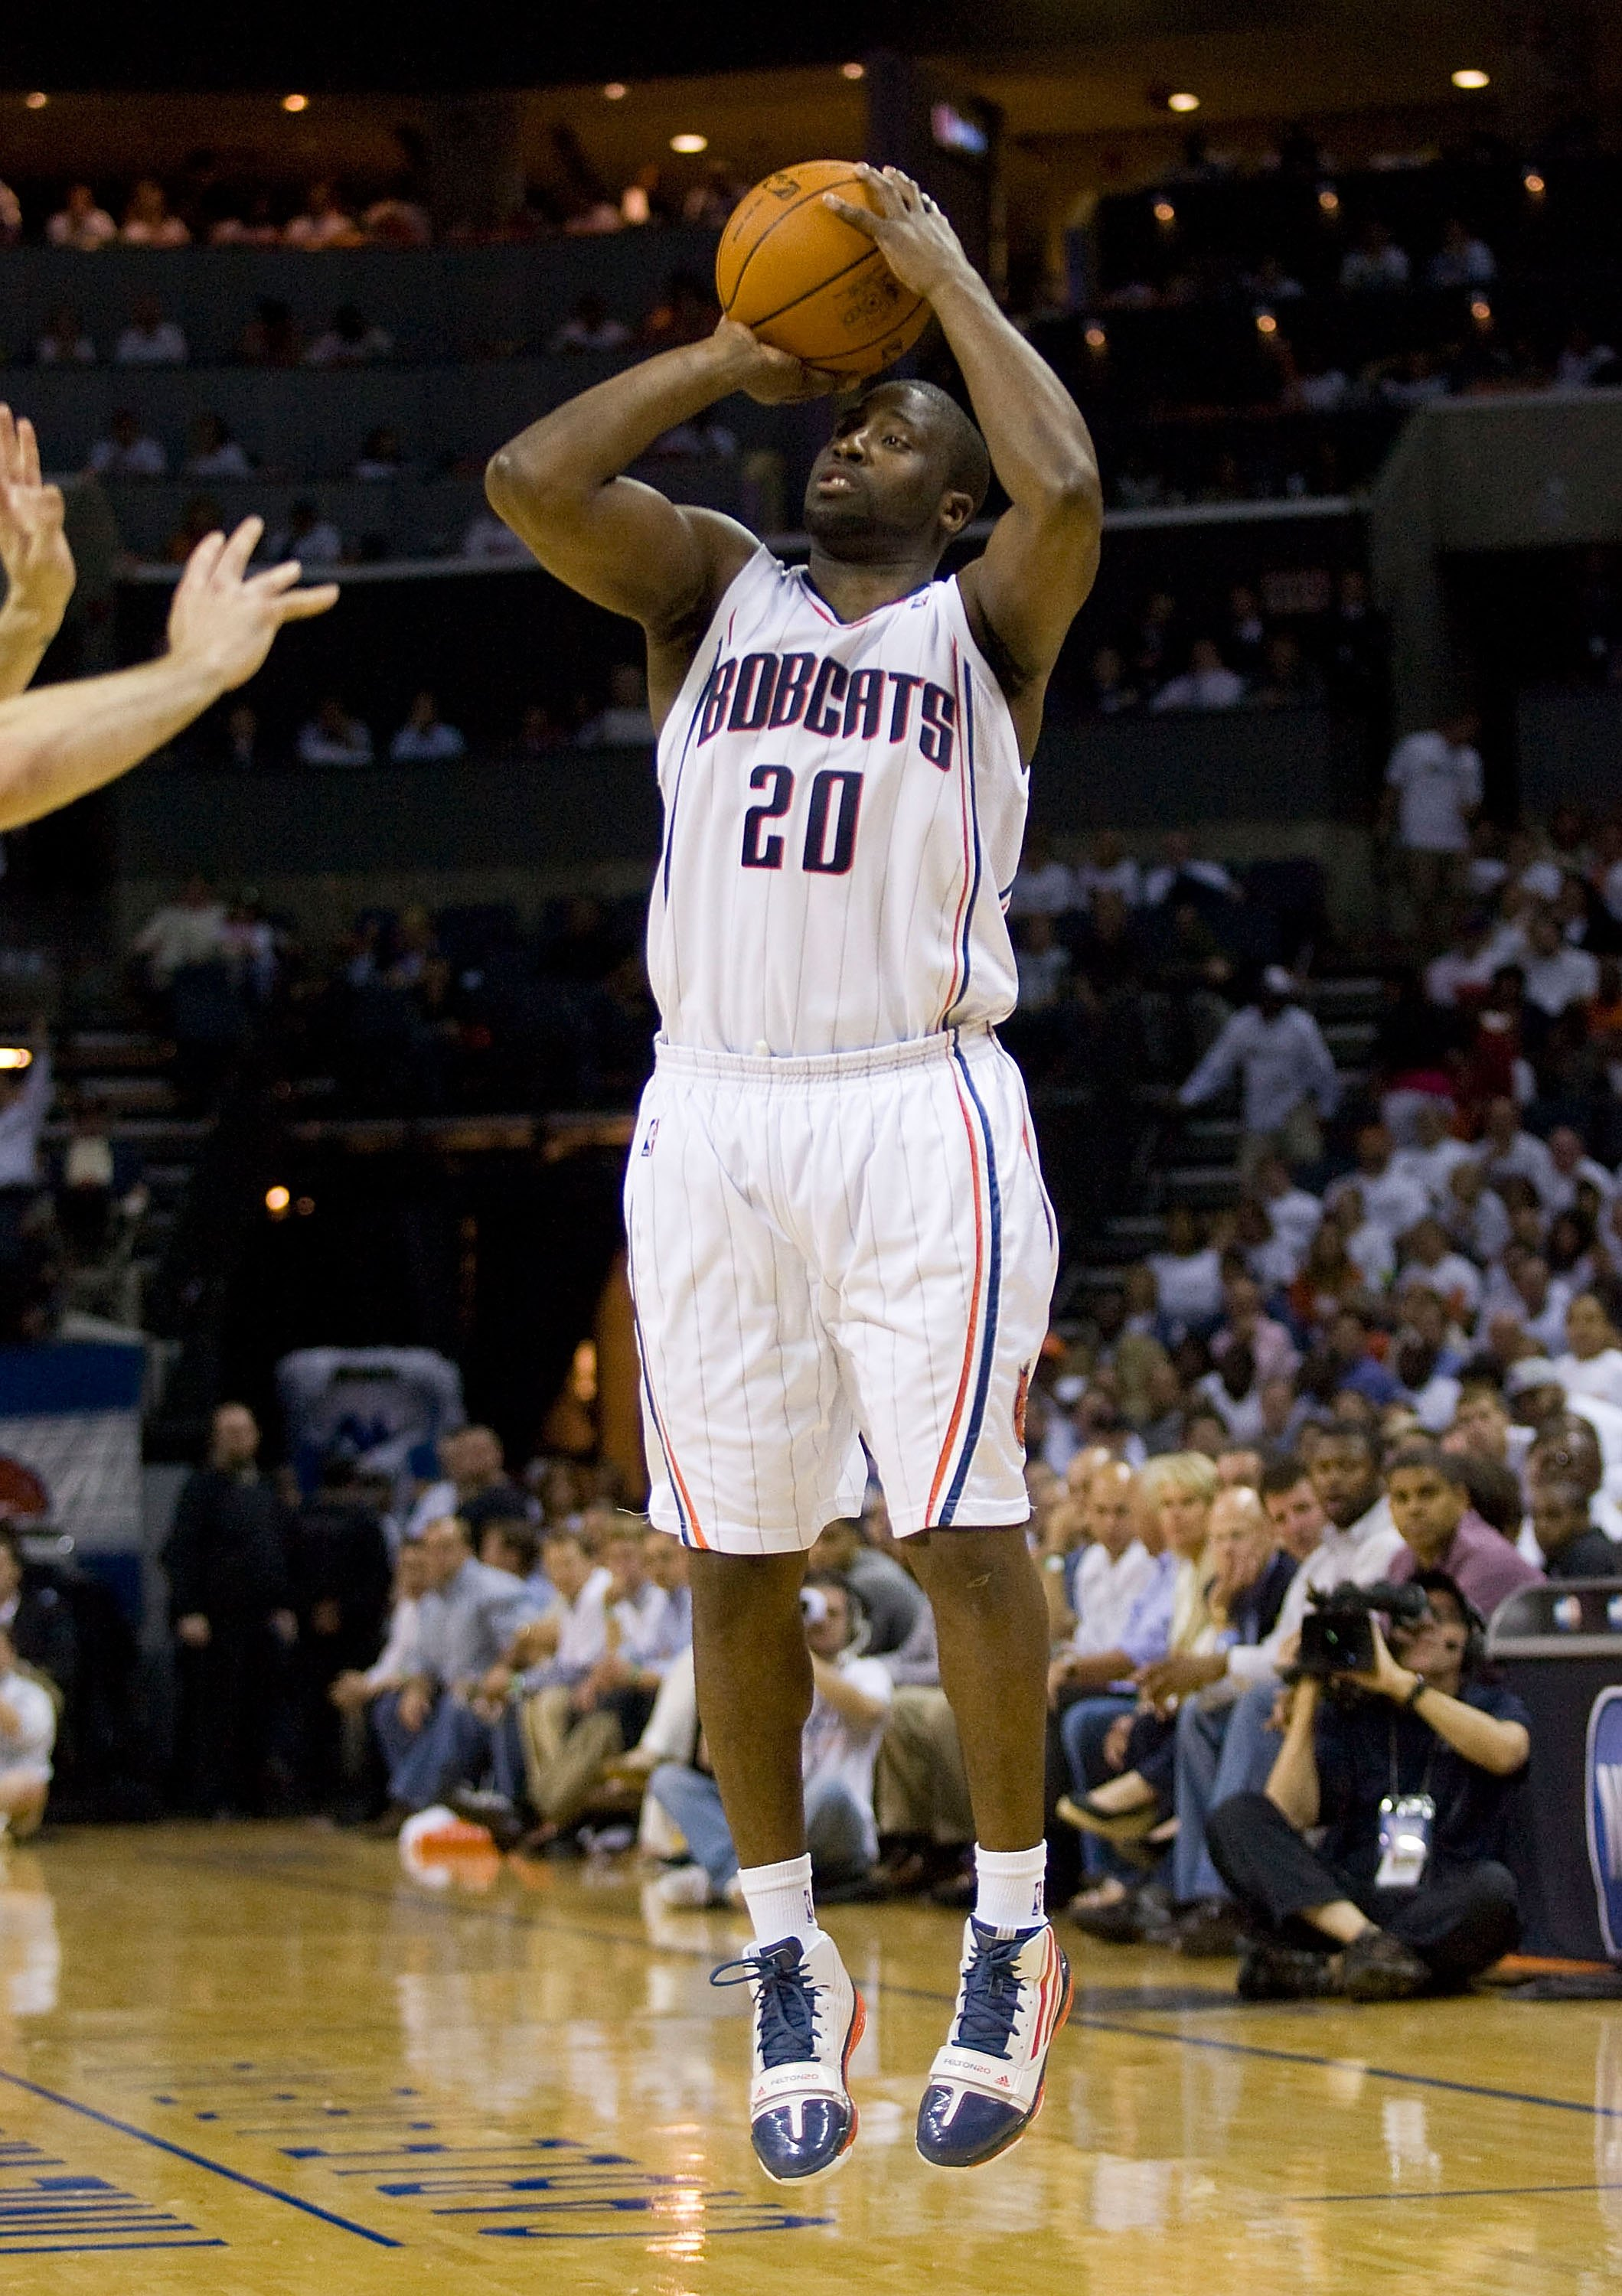 CHARLOTTE, NC - APRIL 26: Raymond Felton #20 of the Charlotte Bobcats attempts a jump shot against the Orlando Magic at Time Warner Cable Arena on April 26, 2010 in Charlotte, North Carolina.  The Magic defeated the Bobcats 99-90 to complete the four game